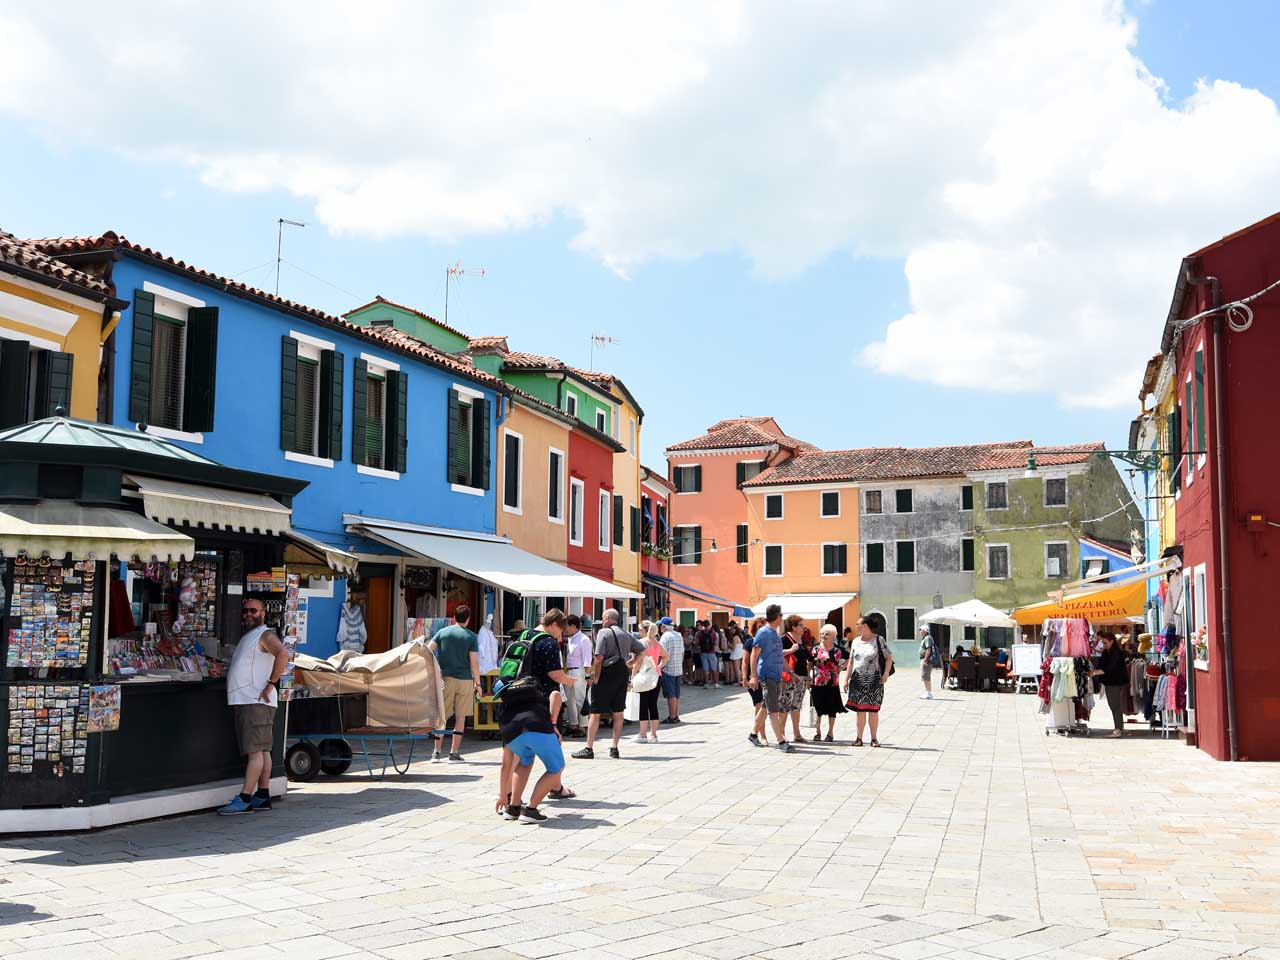 Stands selling their wares to tourists in Burano